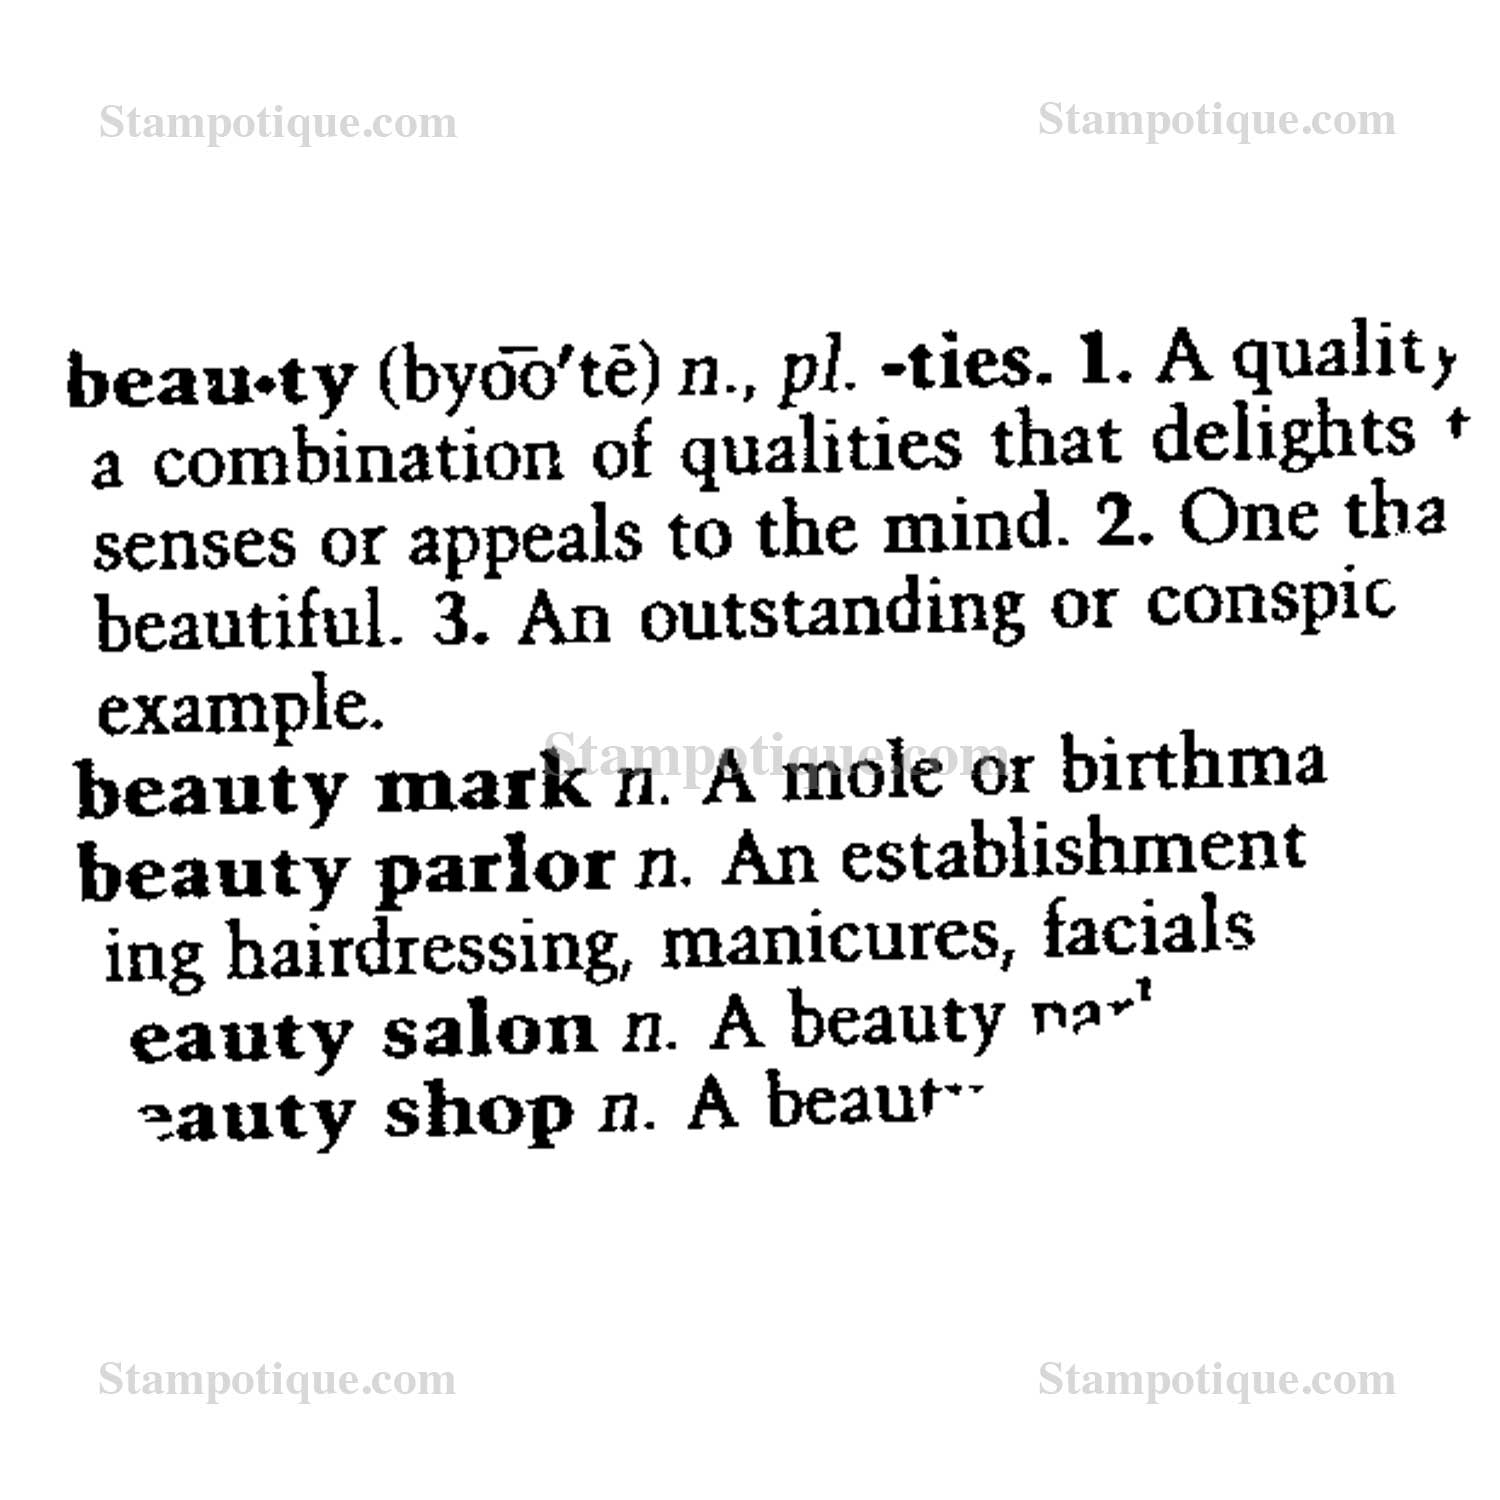 001 7070p Beauty Definition Essay Rare Conclusion Extended Full